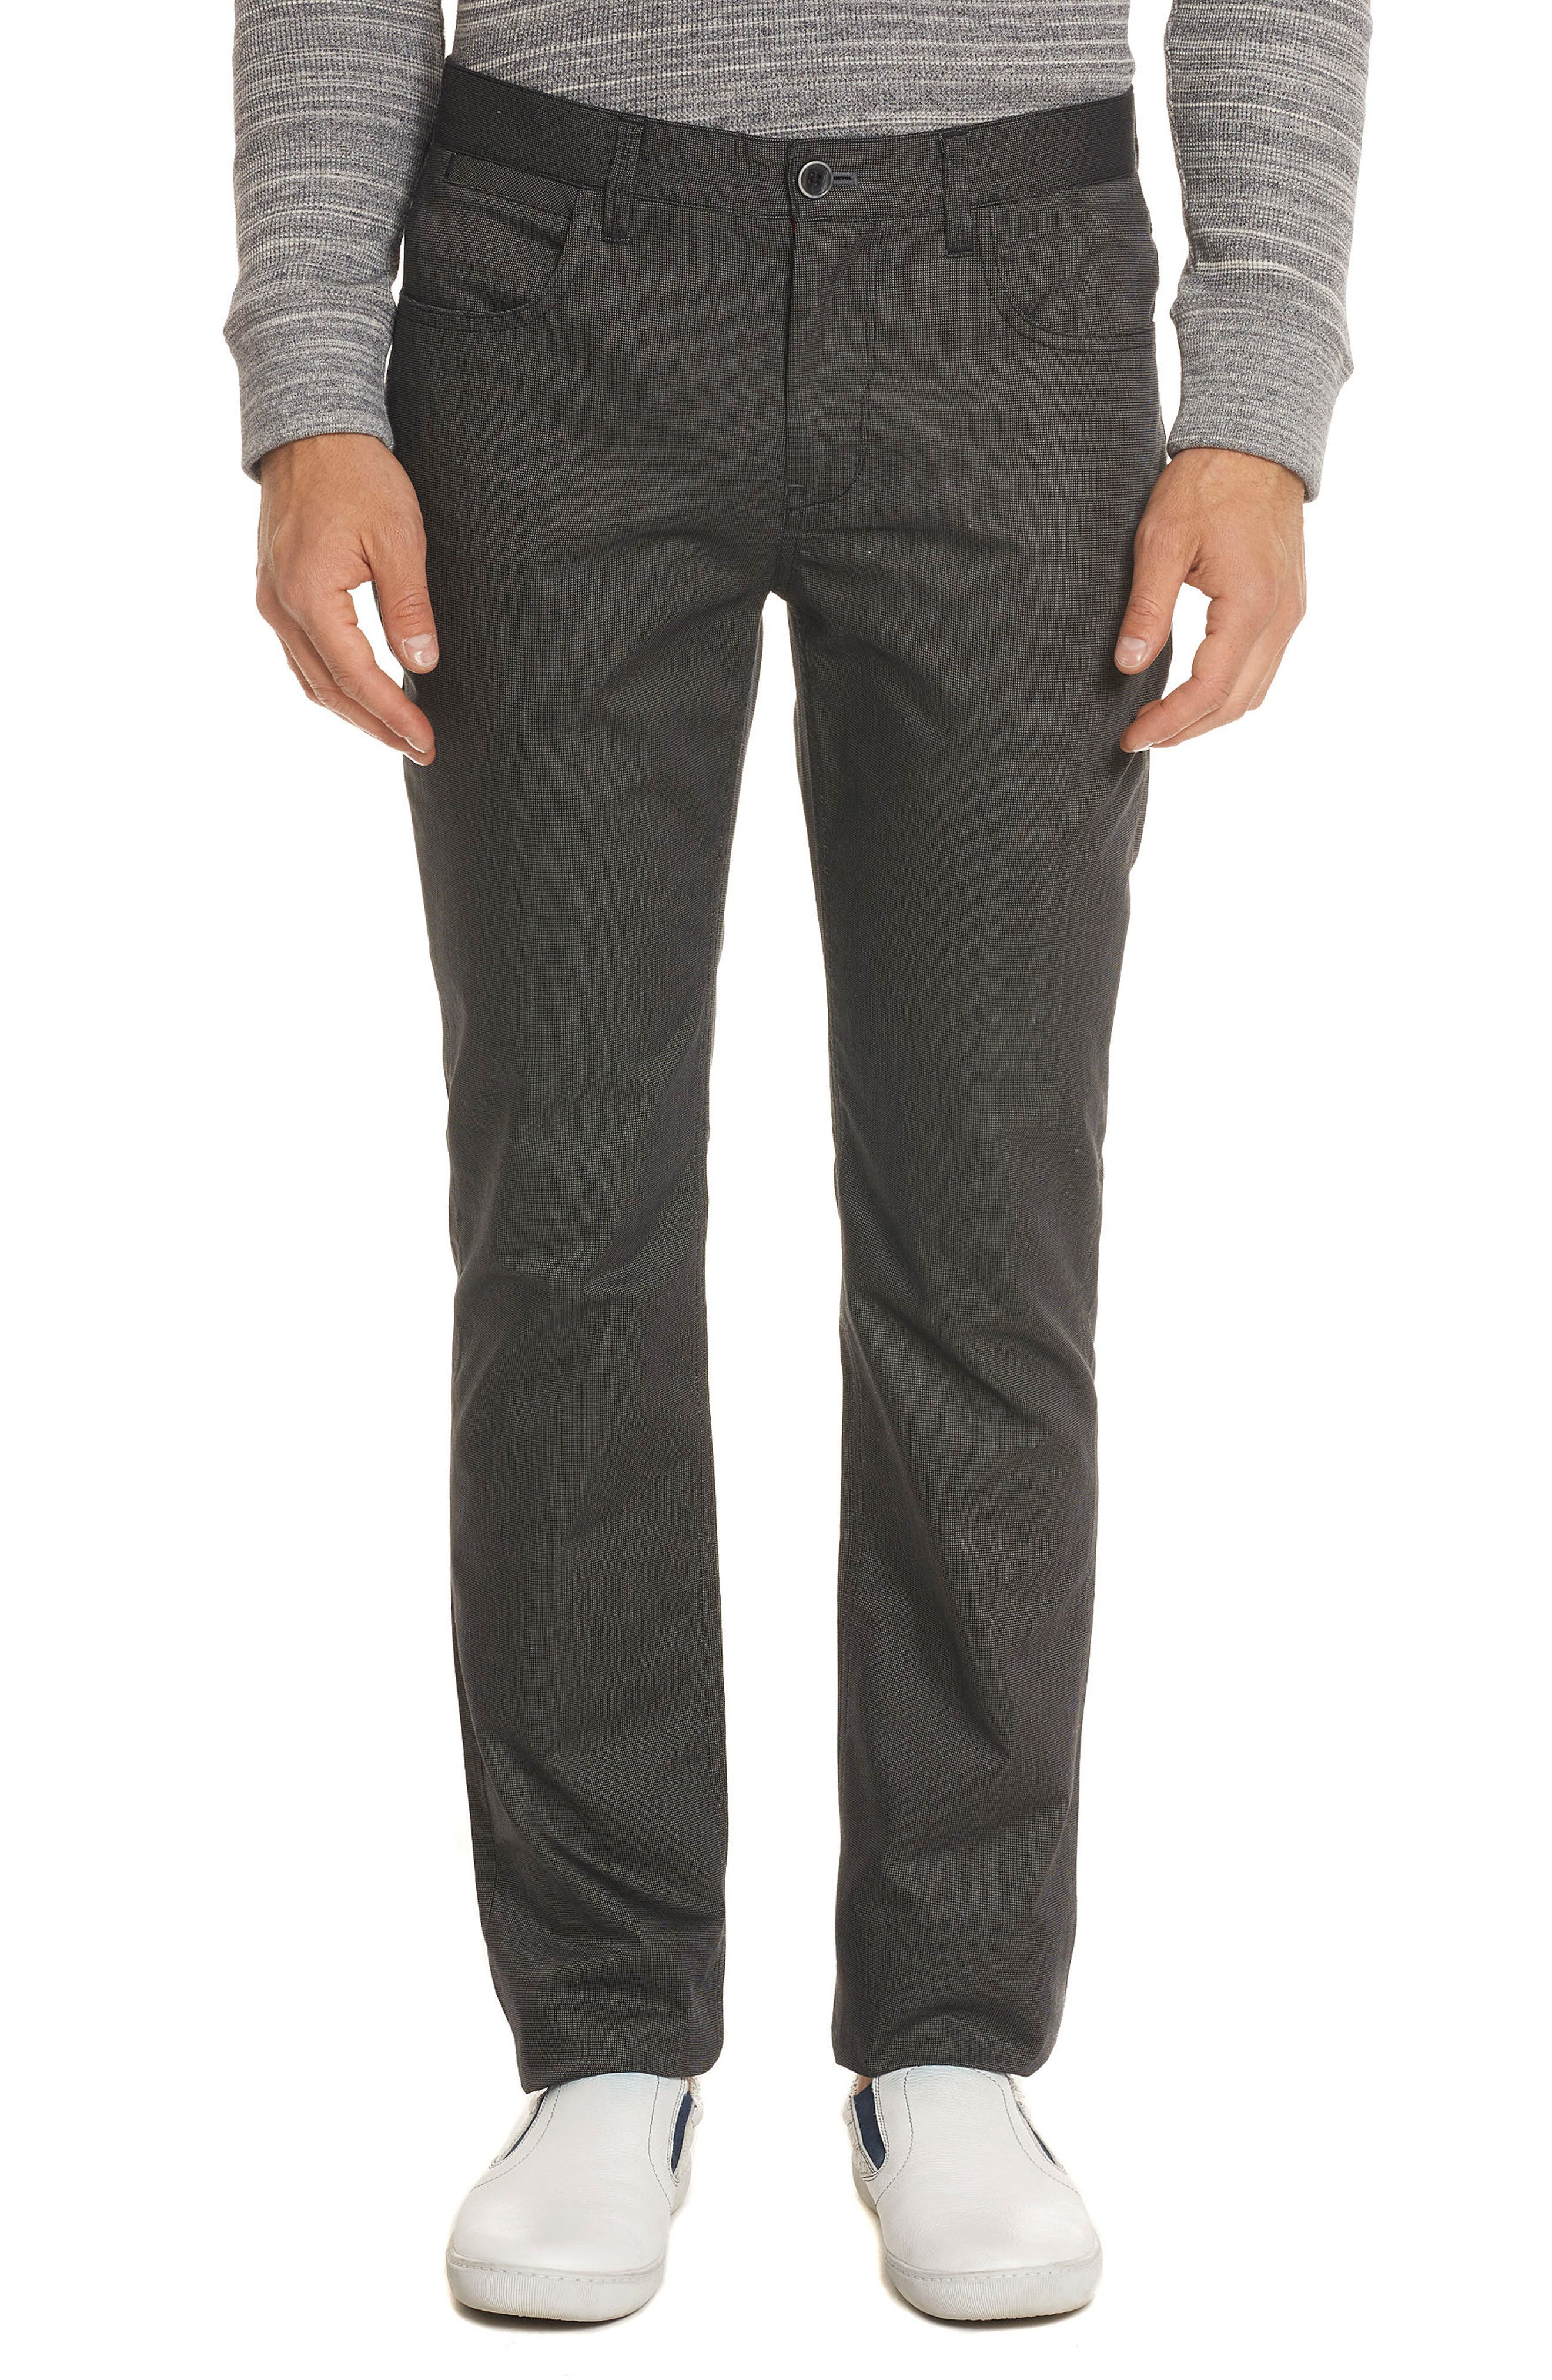 Prio Tailored Fit Pants,                         Main,                         color, 001